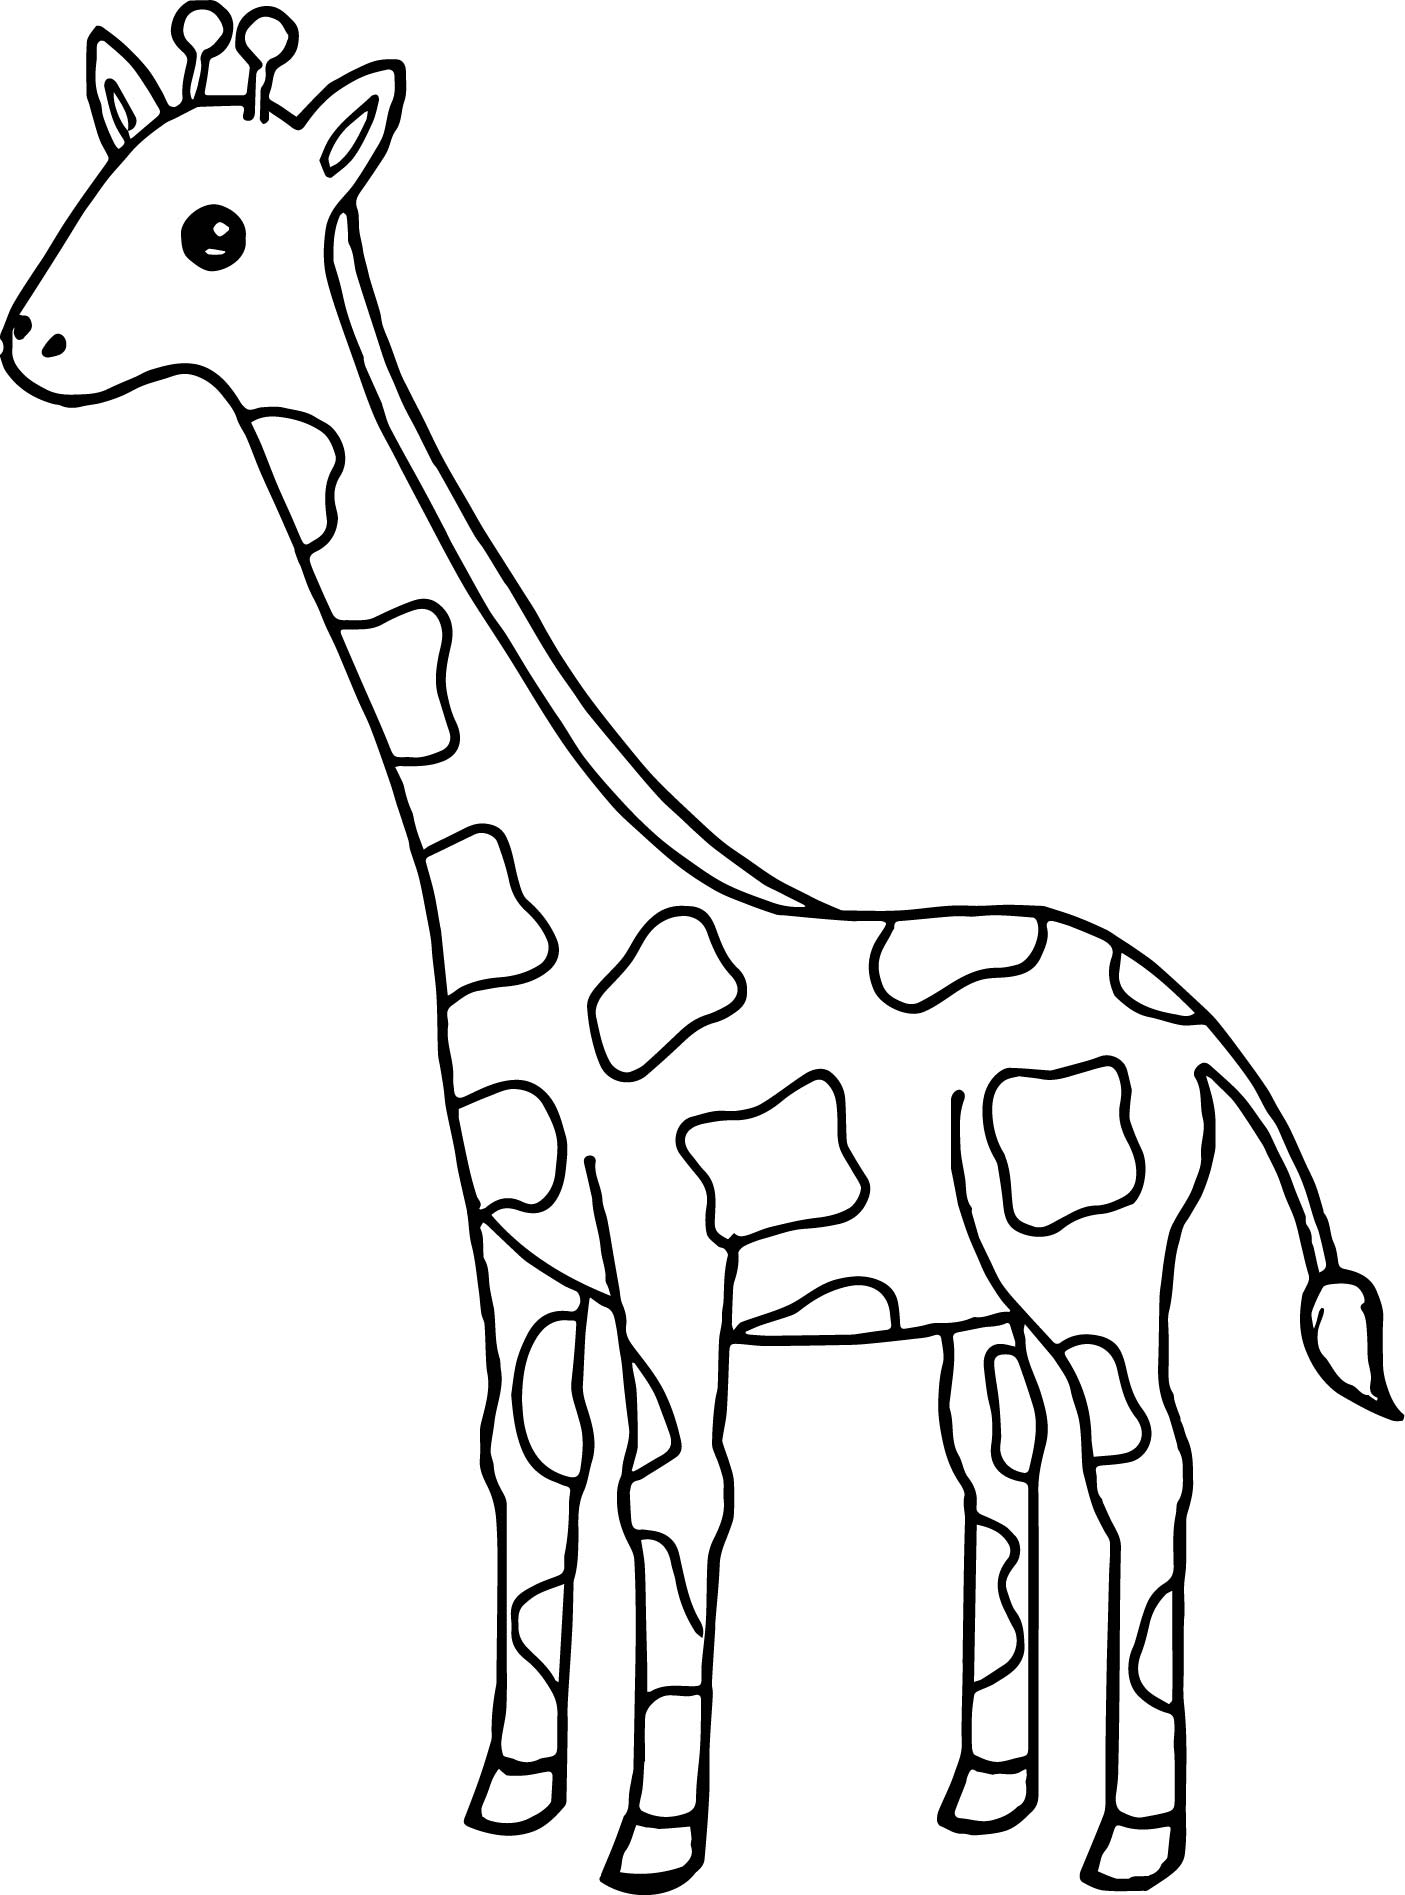 Giraffe Coloring Pages Interesting Tall Giraffe Coloring Page  Wecoloringpage Decorating Inspiration